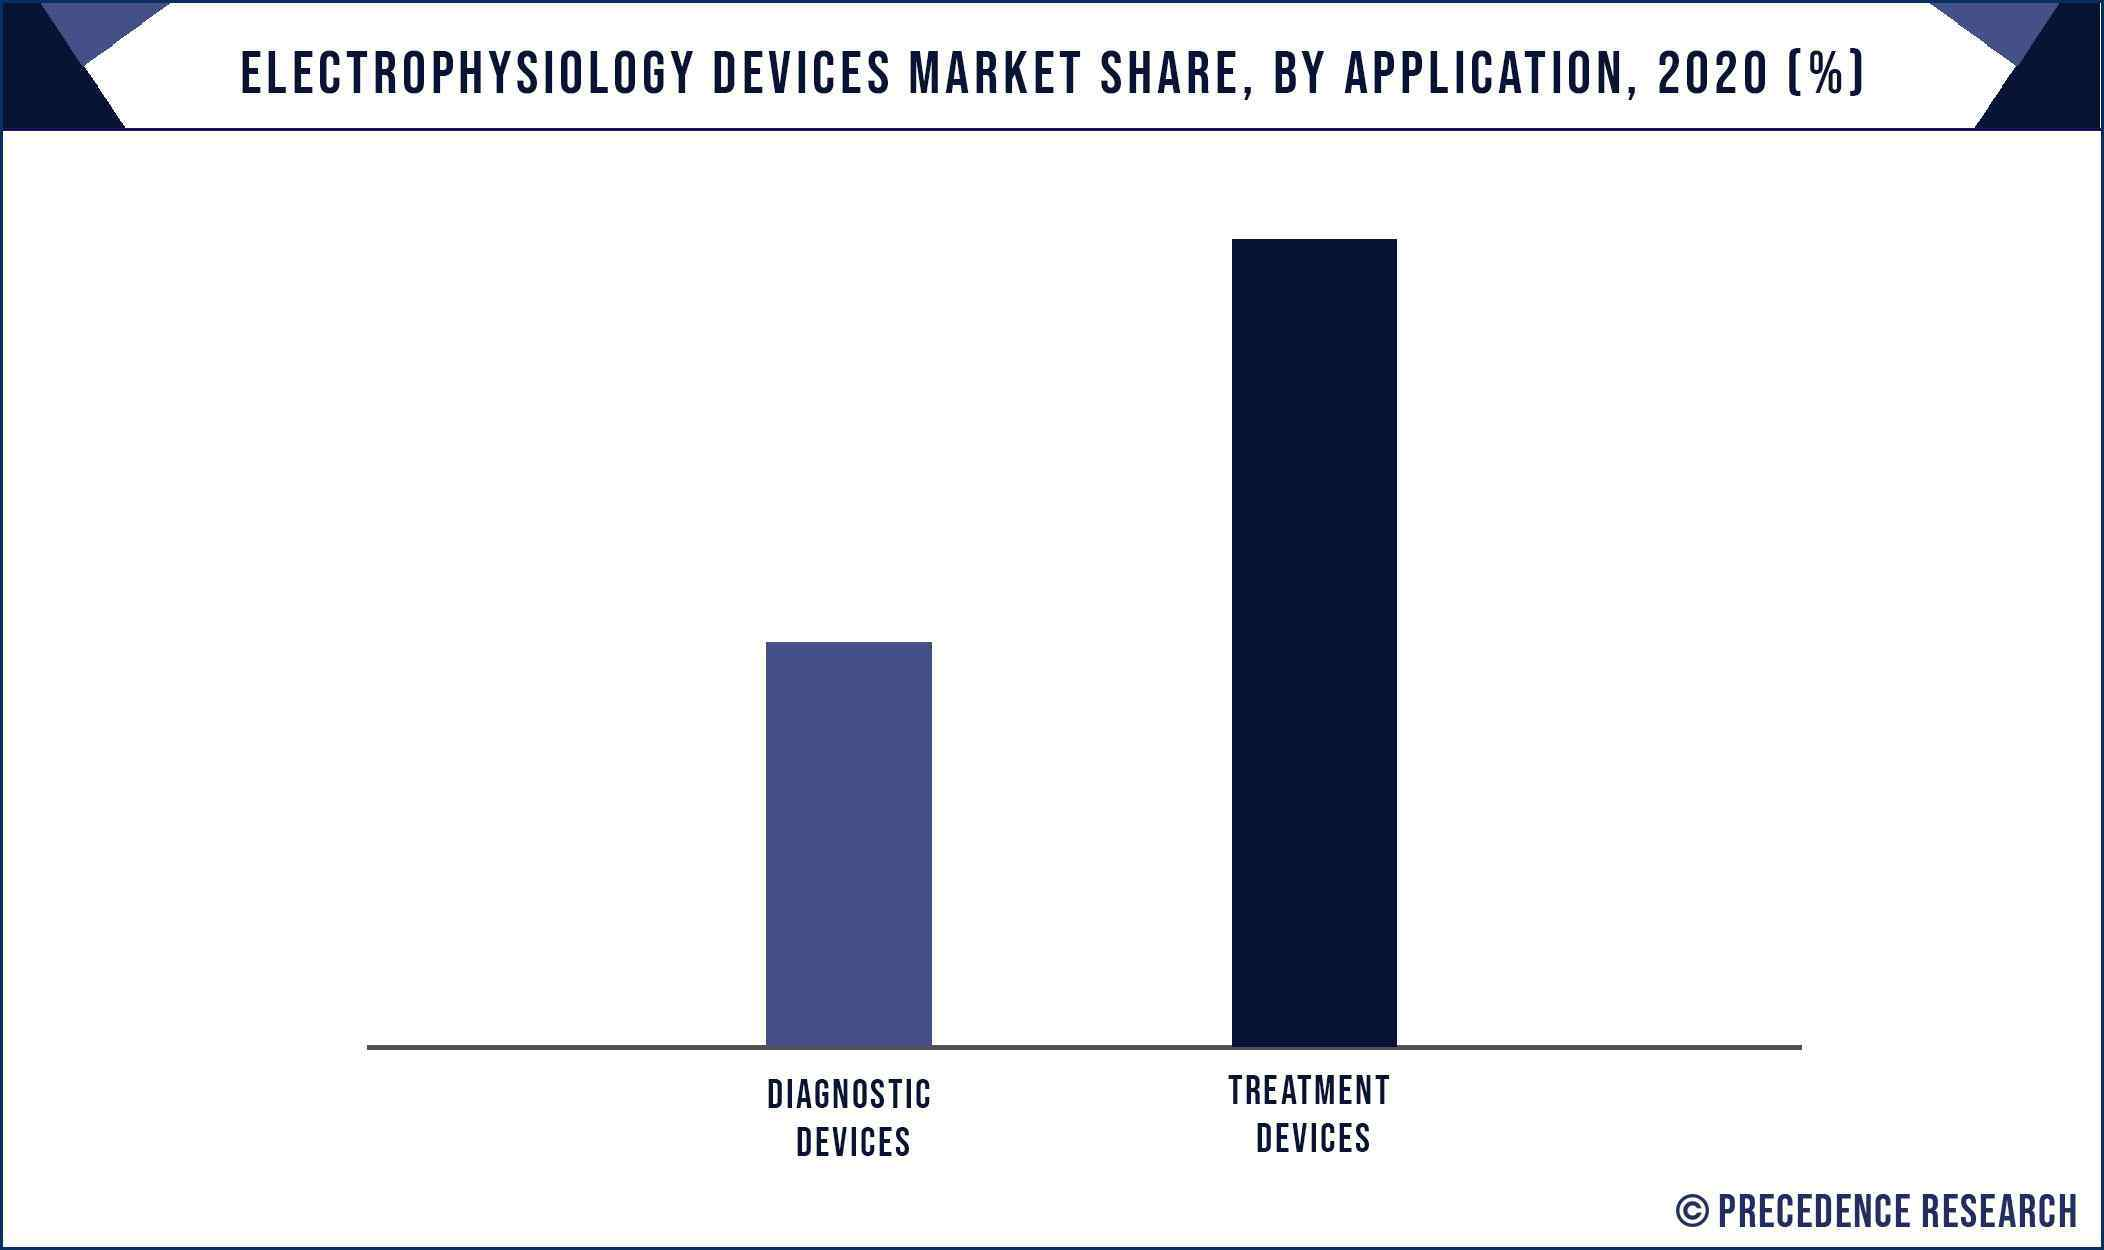 Electrophysiology Devices Market Share, By Application, 2020 (%)